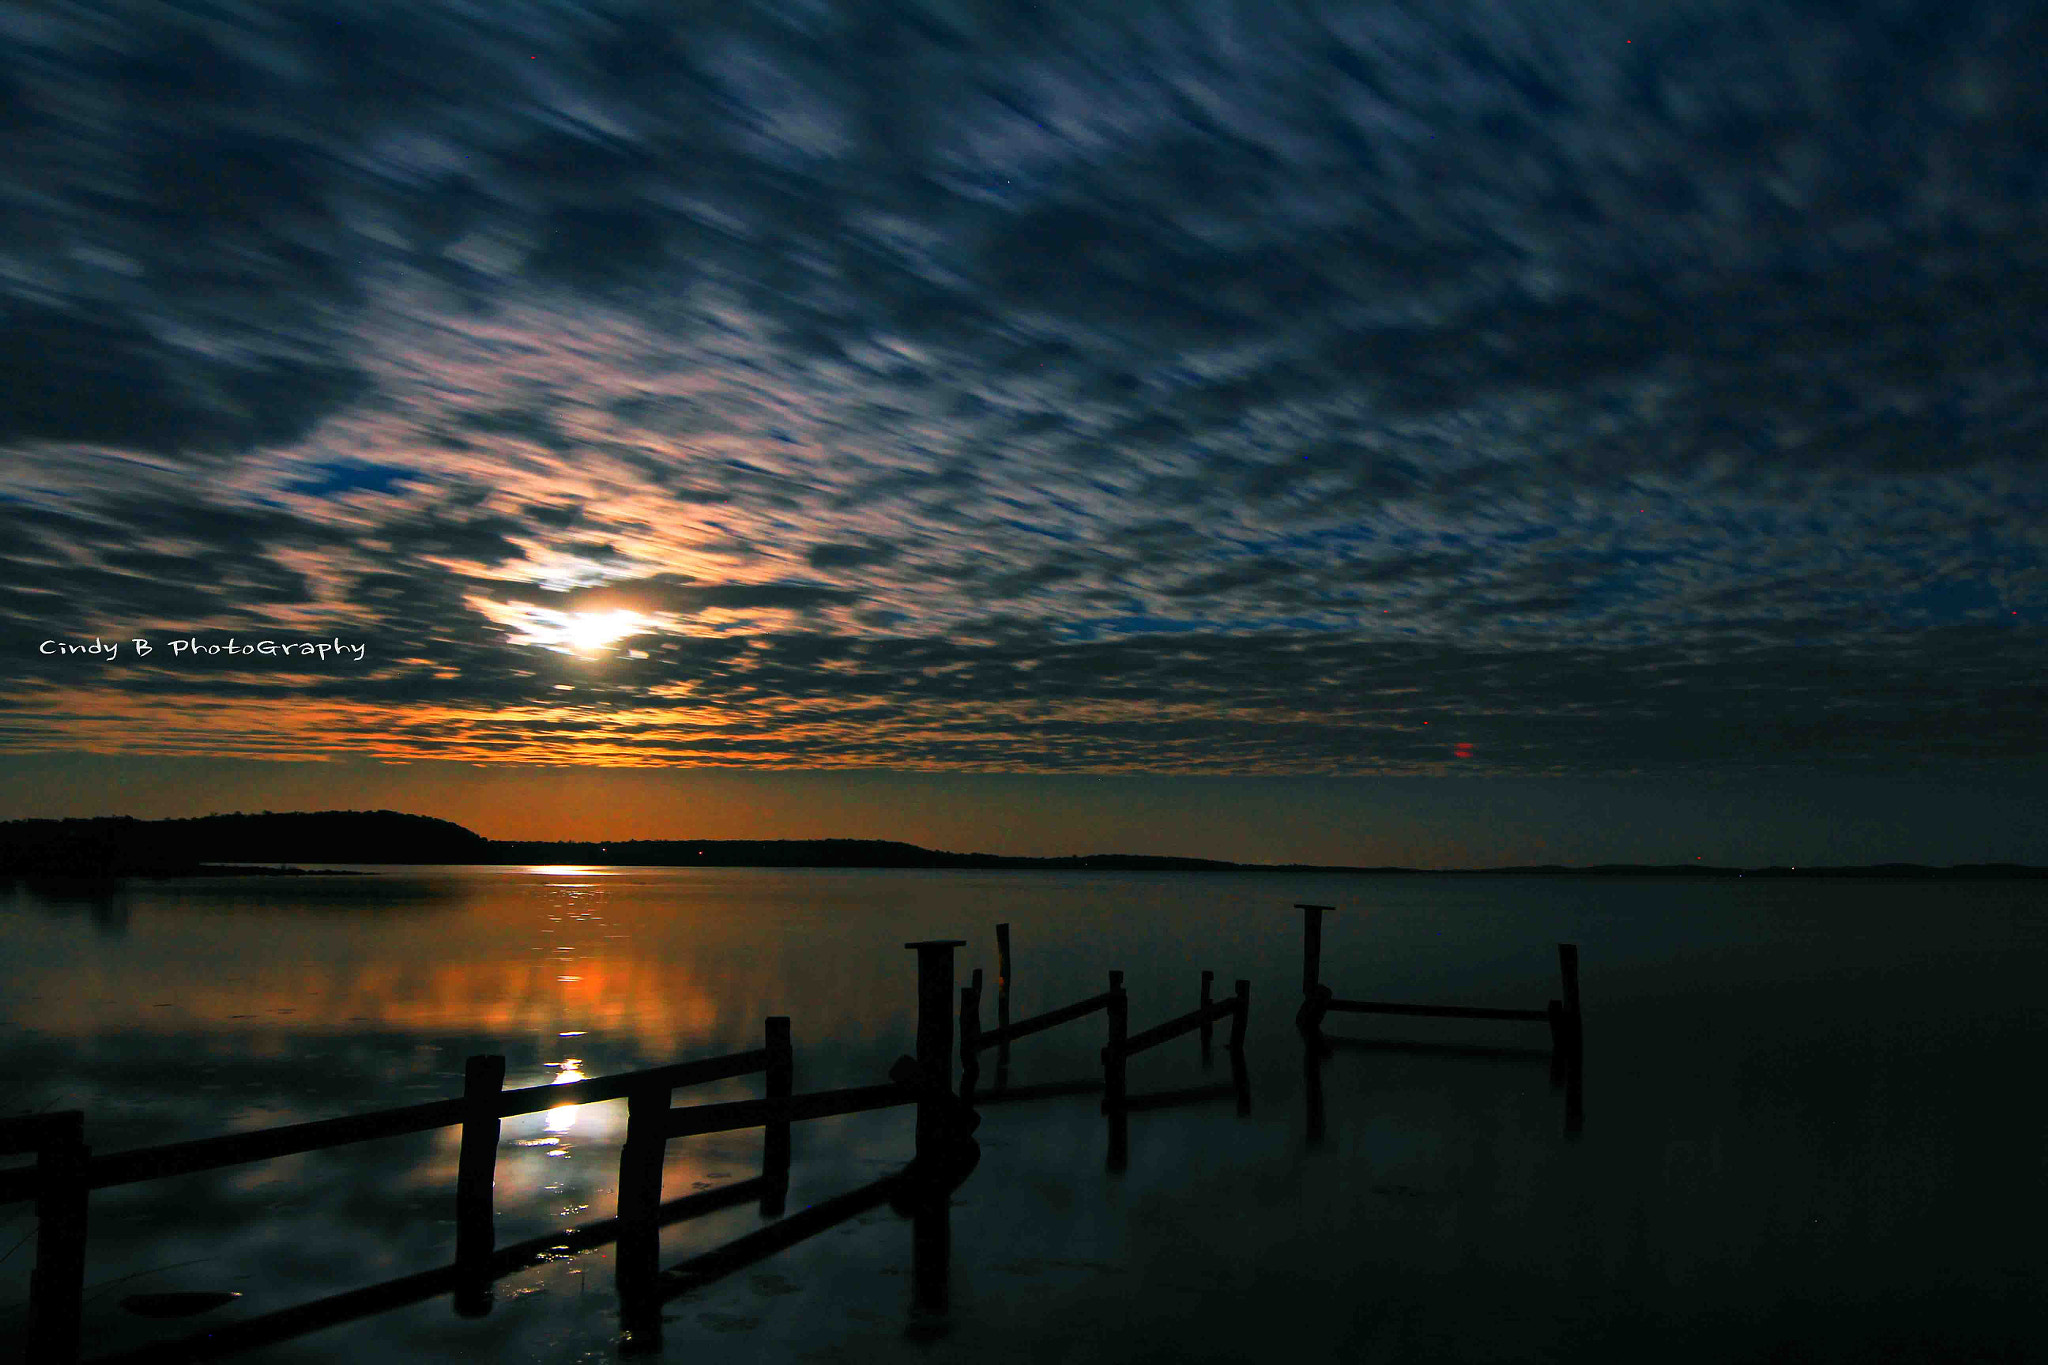 Photograph Wilson Inlet Moon reflection in the Night by Cindy  Pang on 500px